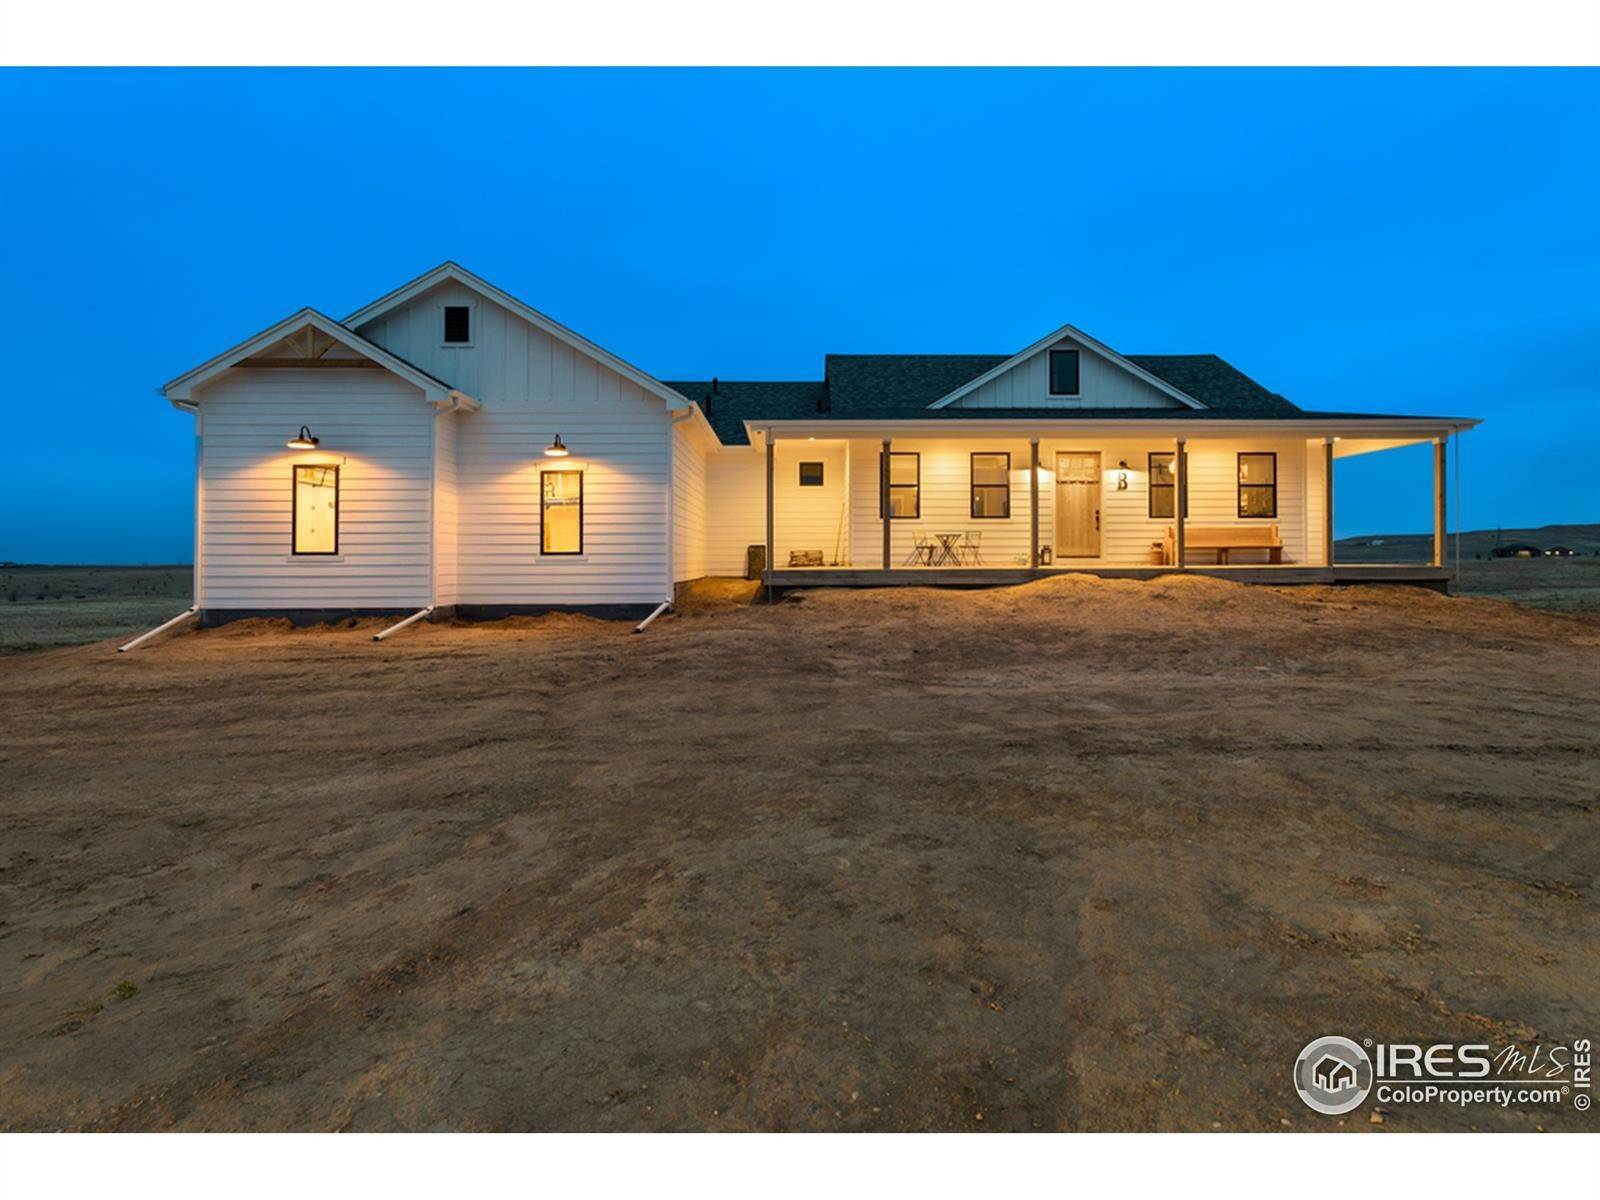 Single Family Homes pour l Vente à 52026 County Road 21 Nunn, Colorado 80648 États-Unis